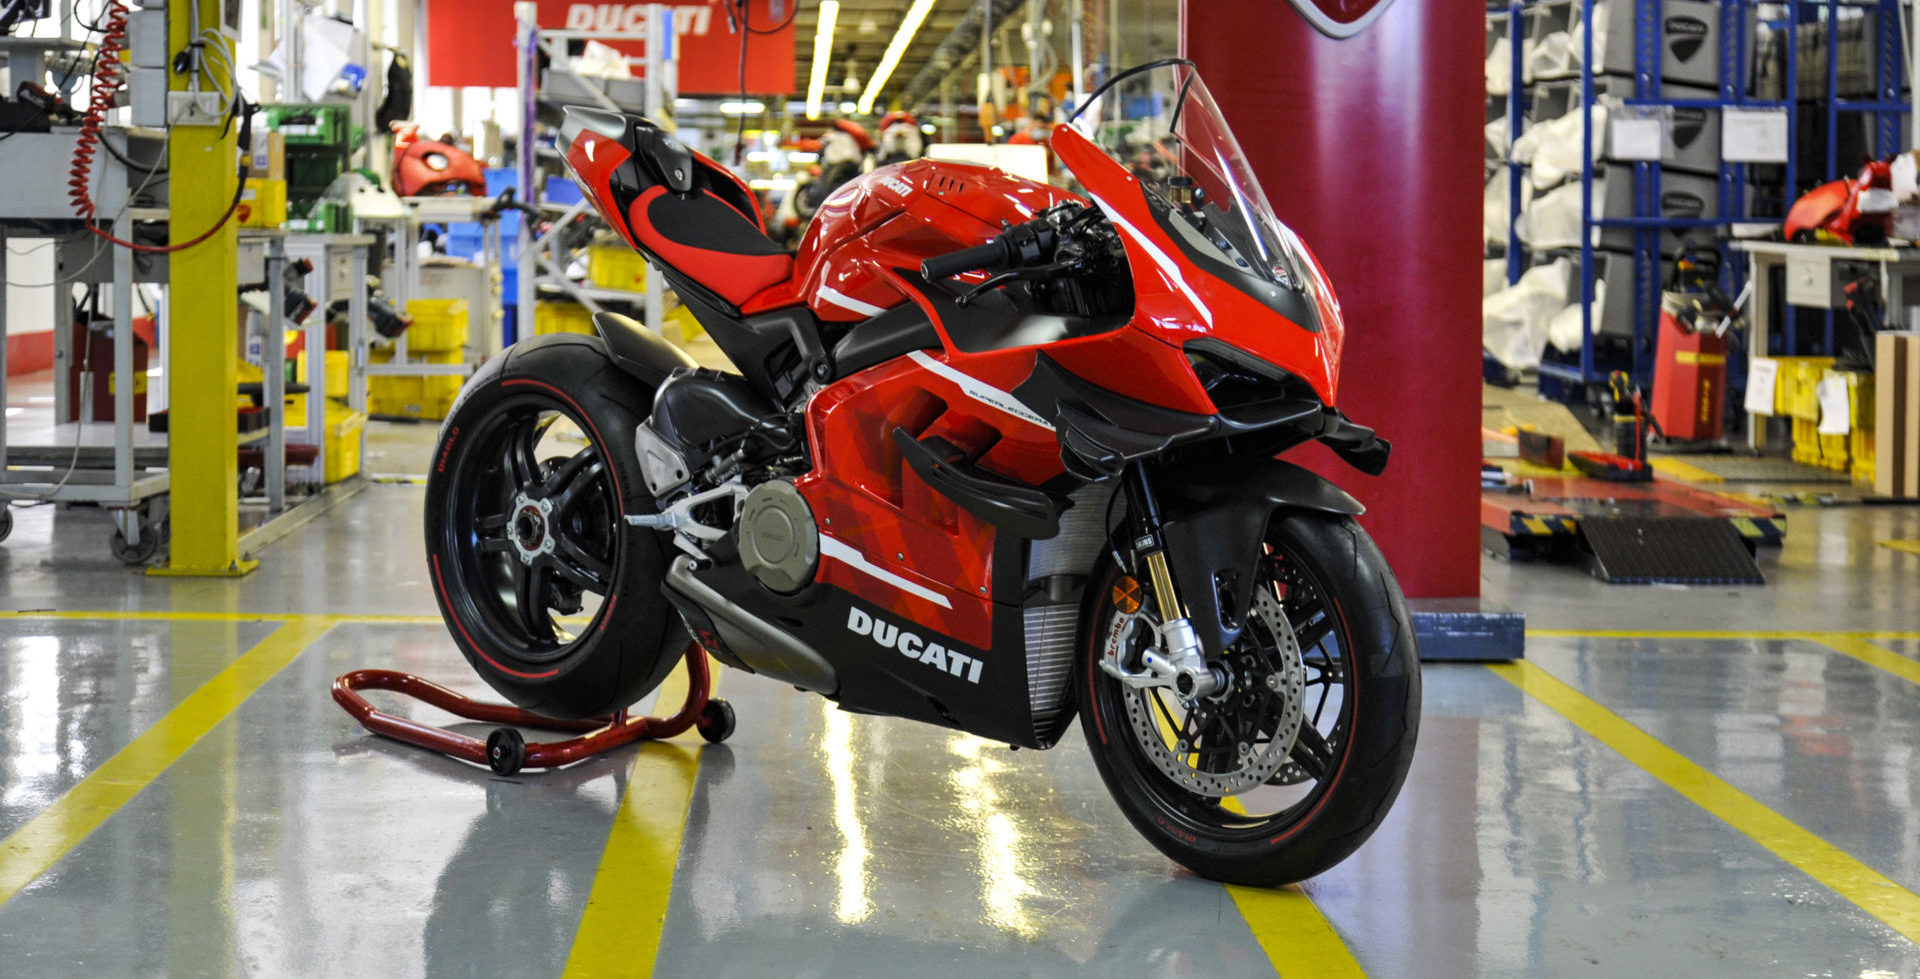 Ducati Superleggera V4 001 of 500 numbered units in the Ducati factory in Italy. Photo courtesy Ducati.